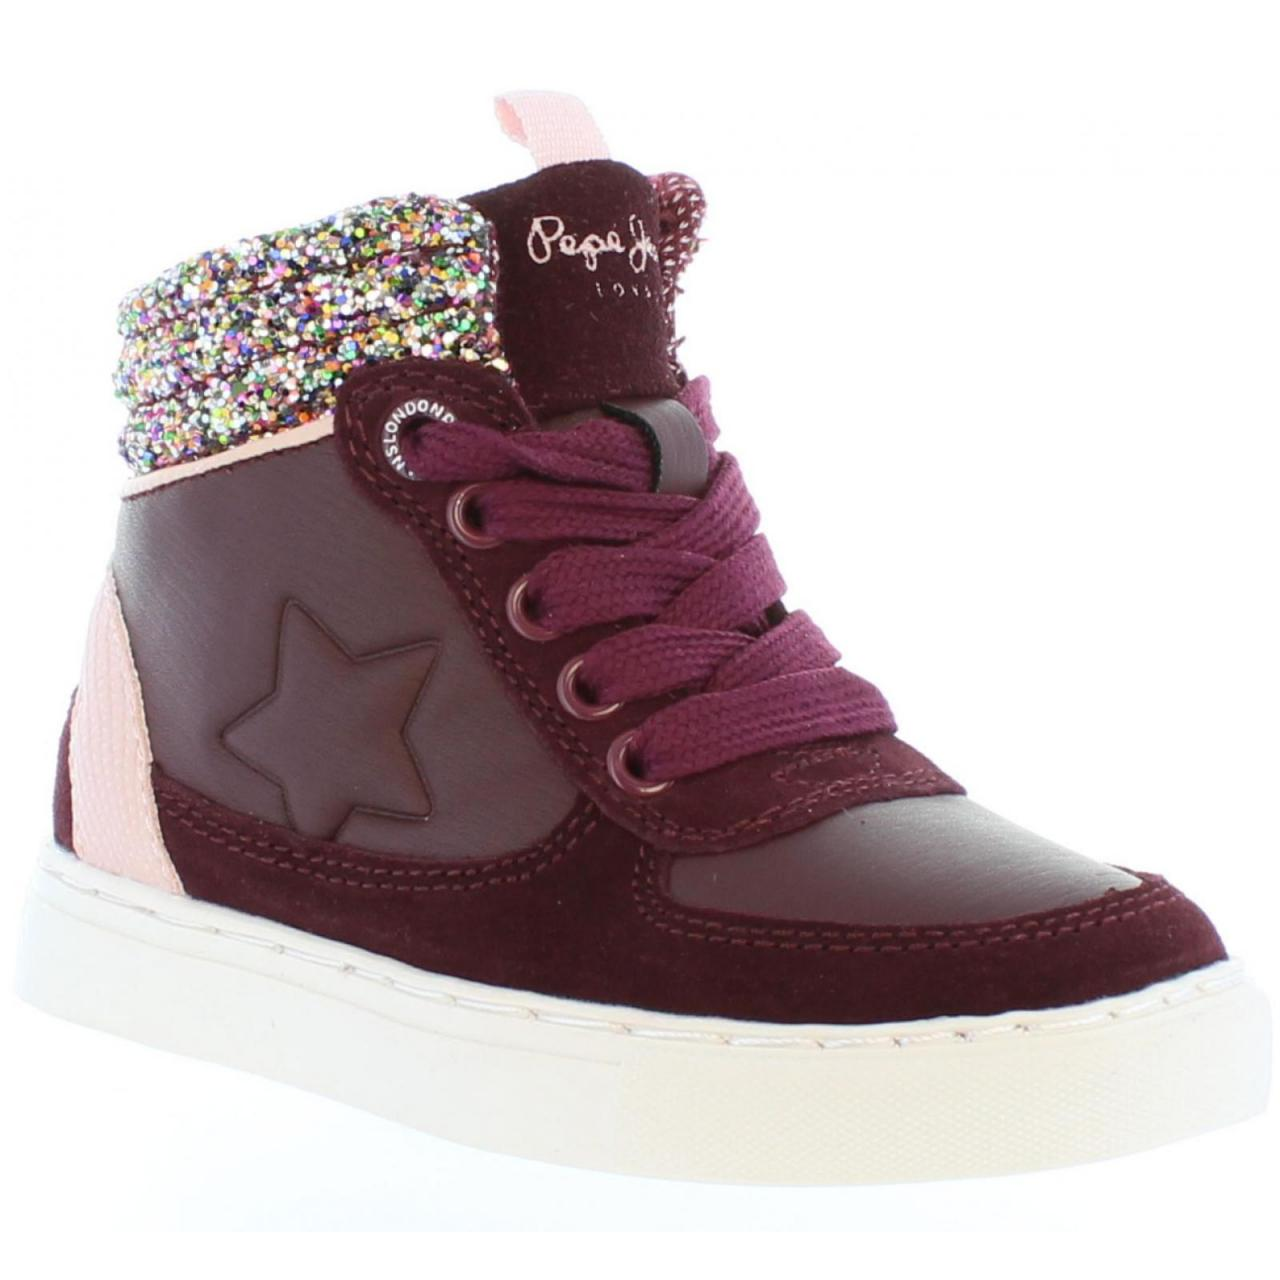 Botines-Pepe-Jeans-Rojo-PGS30247-MONTREAL-BOOT-299-BURGUNDY